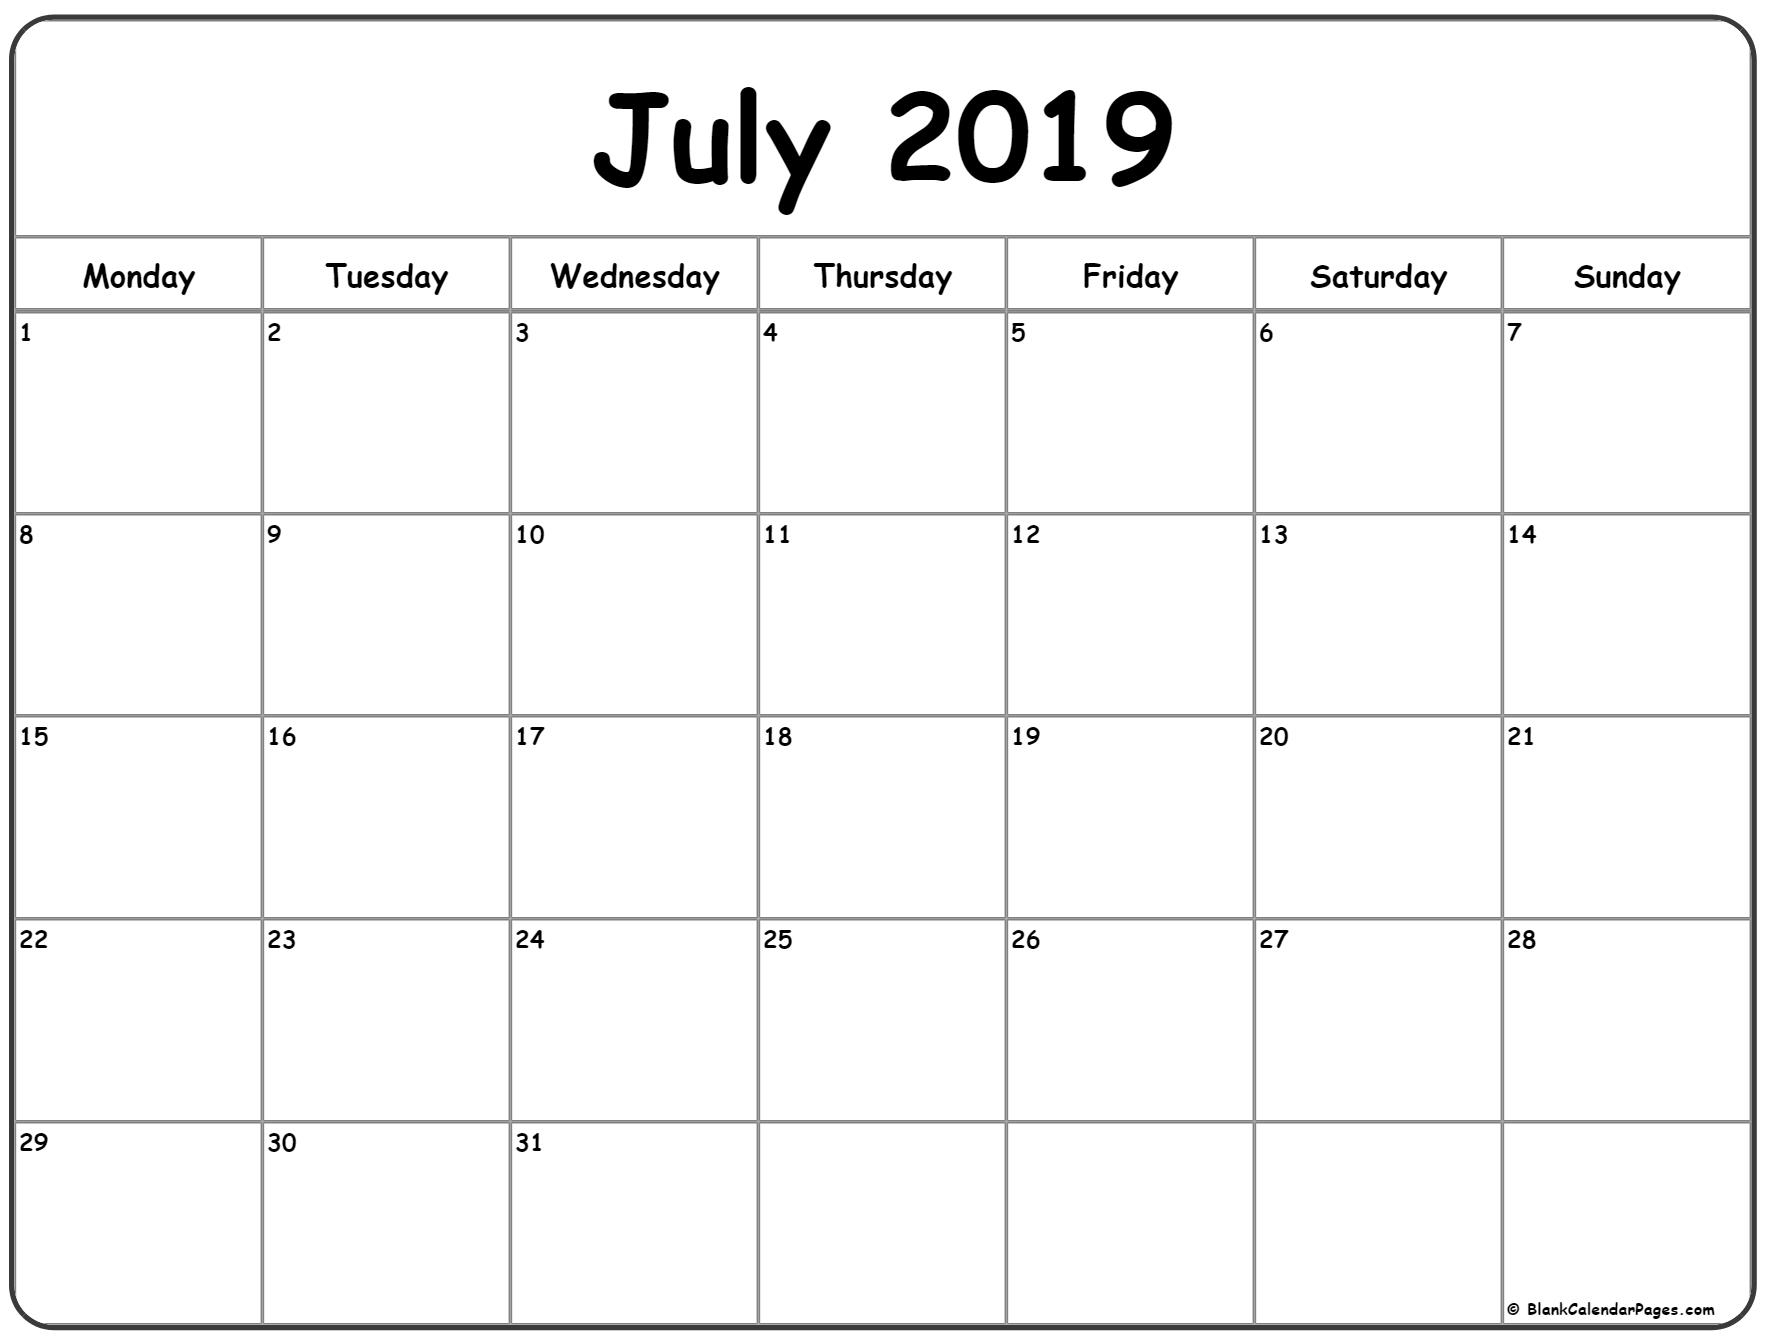 July 2019 Monday Calendar | Monday To Sunday